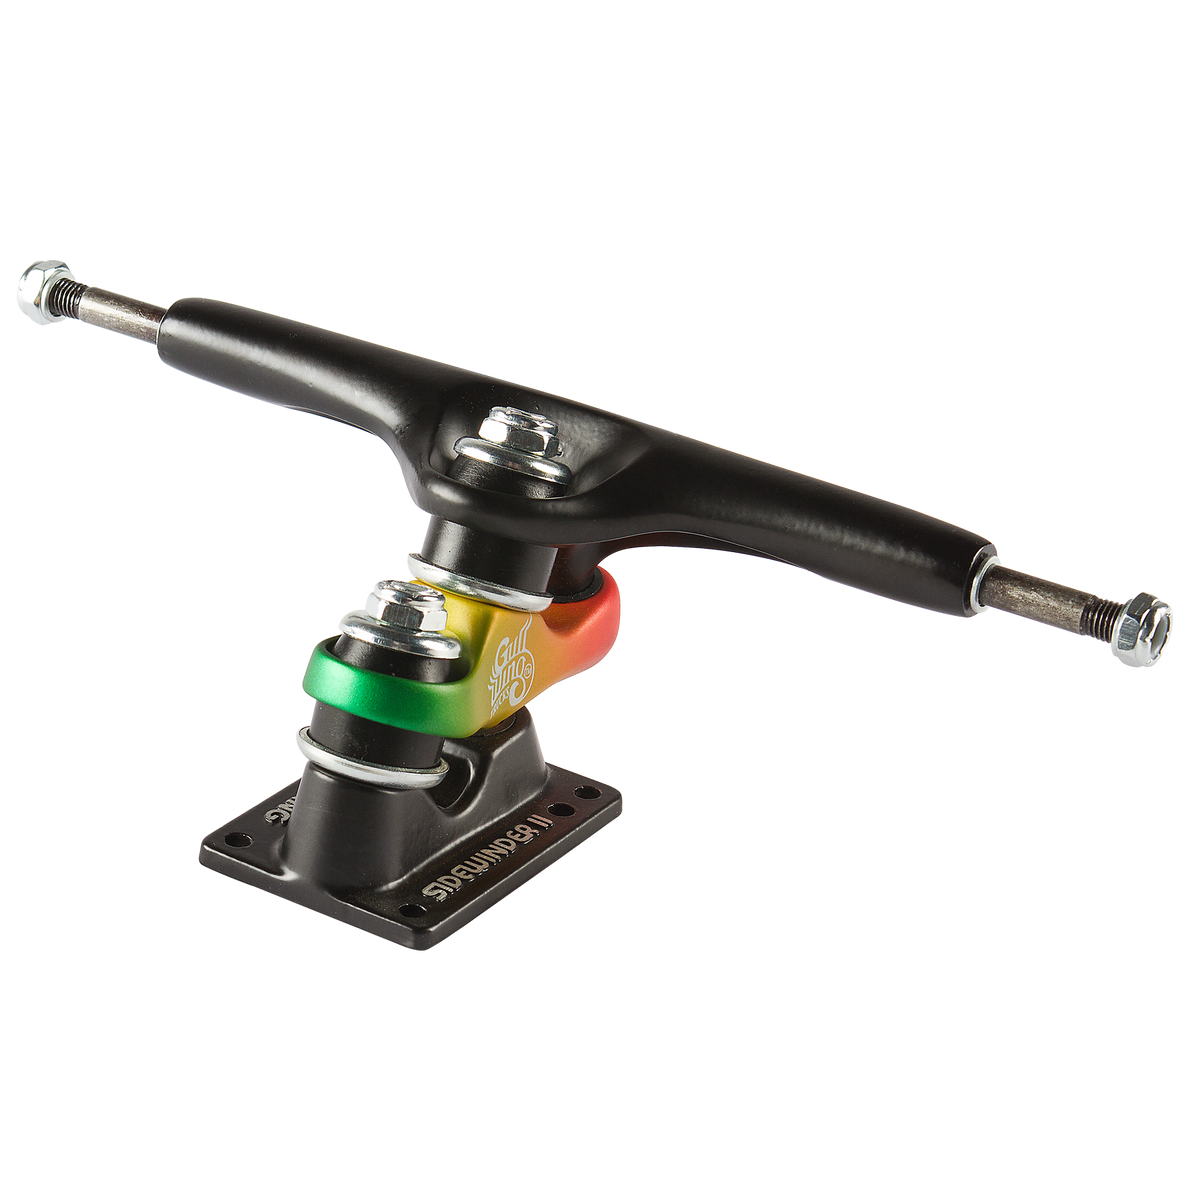 "10.0"" GULLWING SIDEWINDER II RASTA SINGLE SKATE TRUCKS"